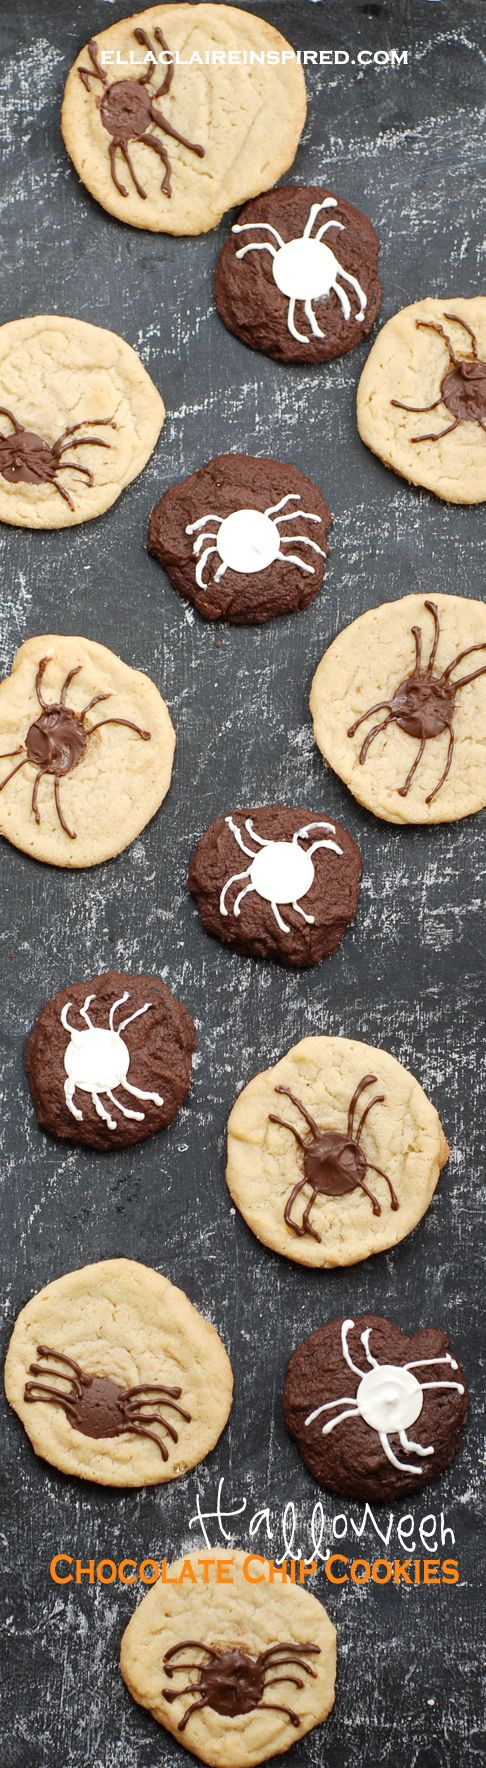 I love these Creepy Crawly Halloween Chocolate Chip Spider Cookies! See the recipe at ellaclaireinspired.com.